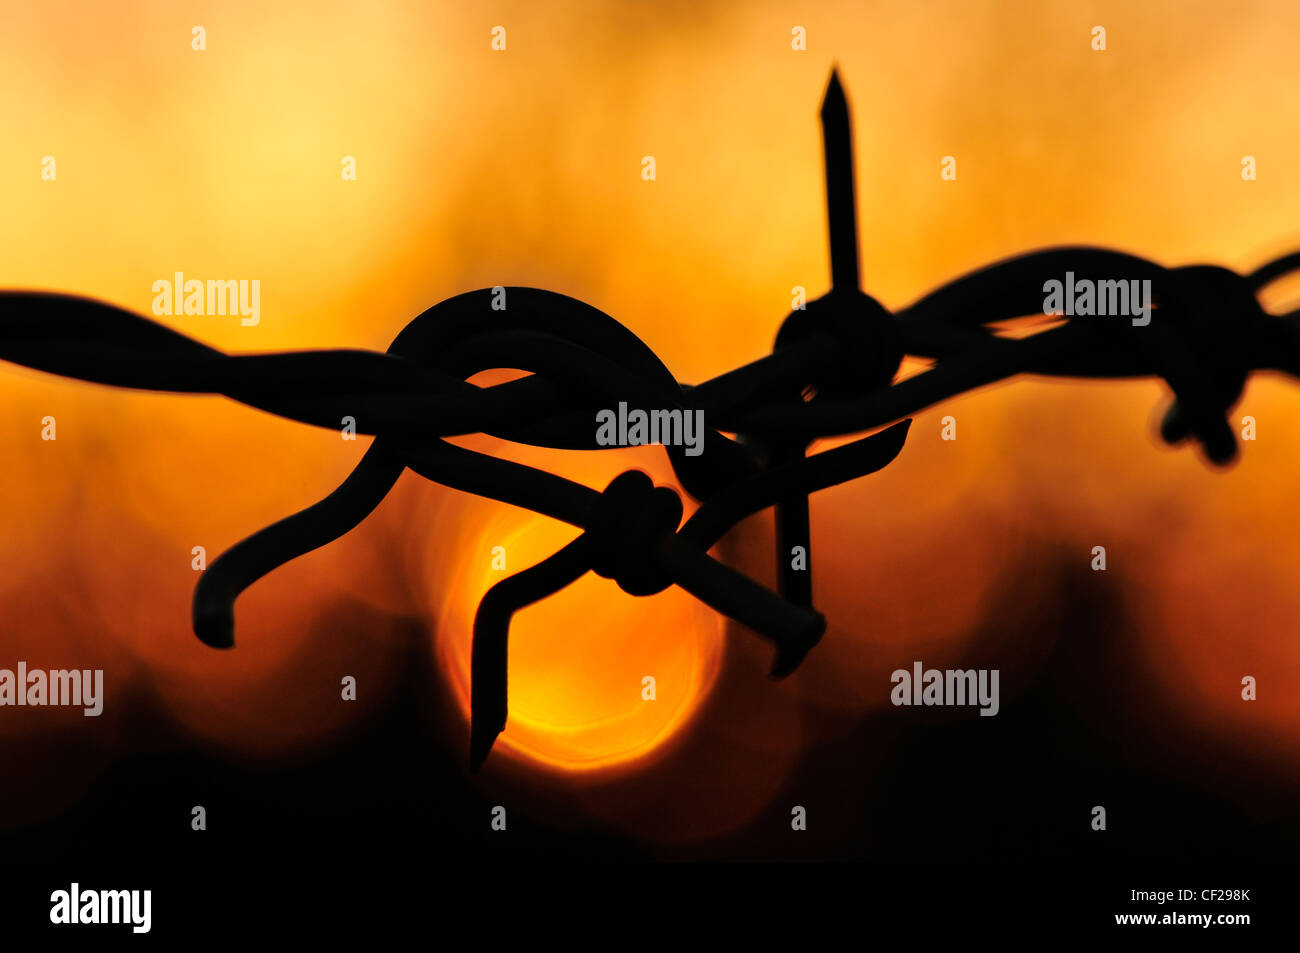 Barbed wire at sunset in Sahuarita, Arizona, USA. Stock Photo